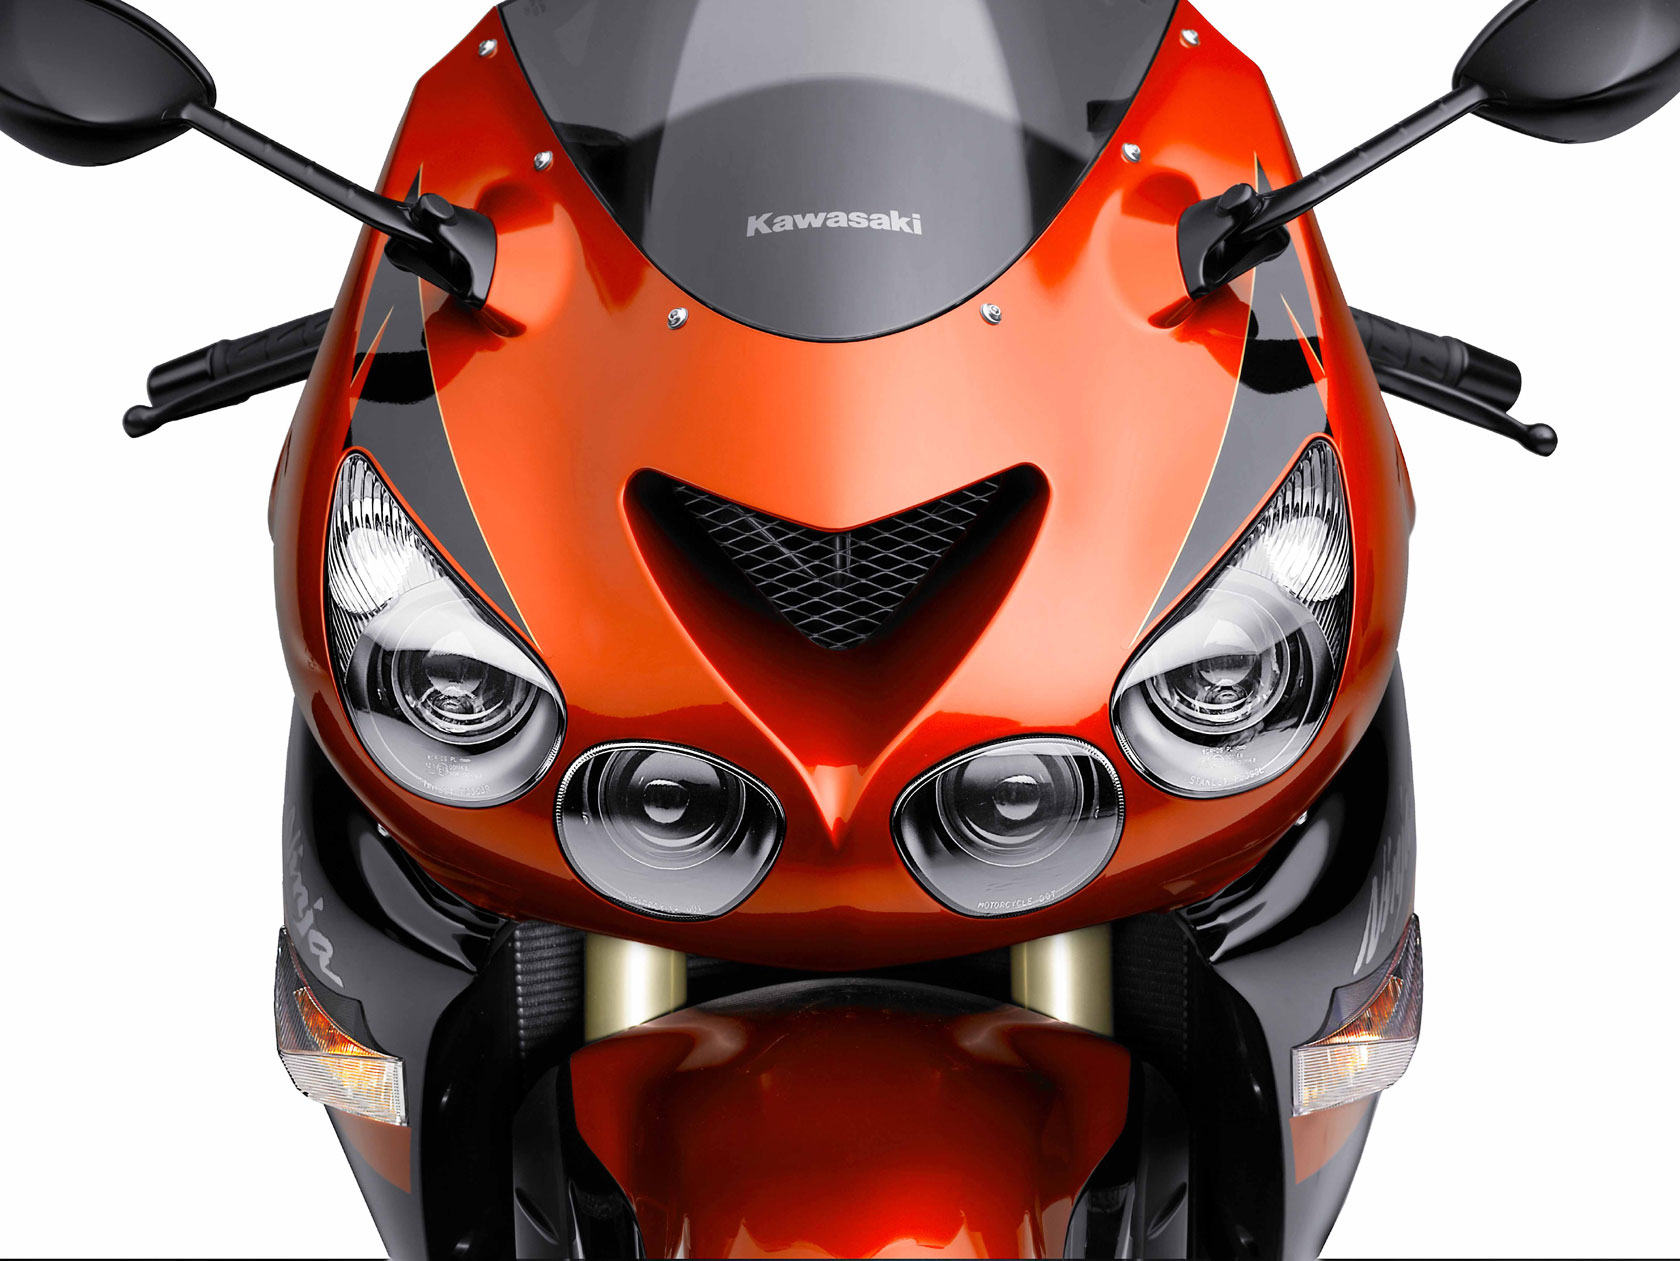 Kawasaki Ninja ZX-14 Candy Burnt Orange hyper sport bike